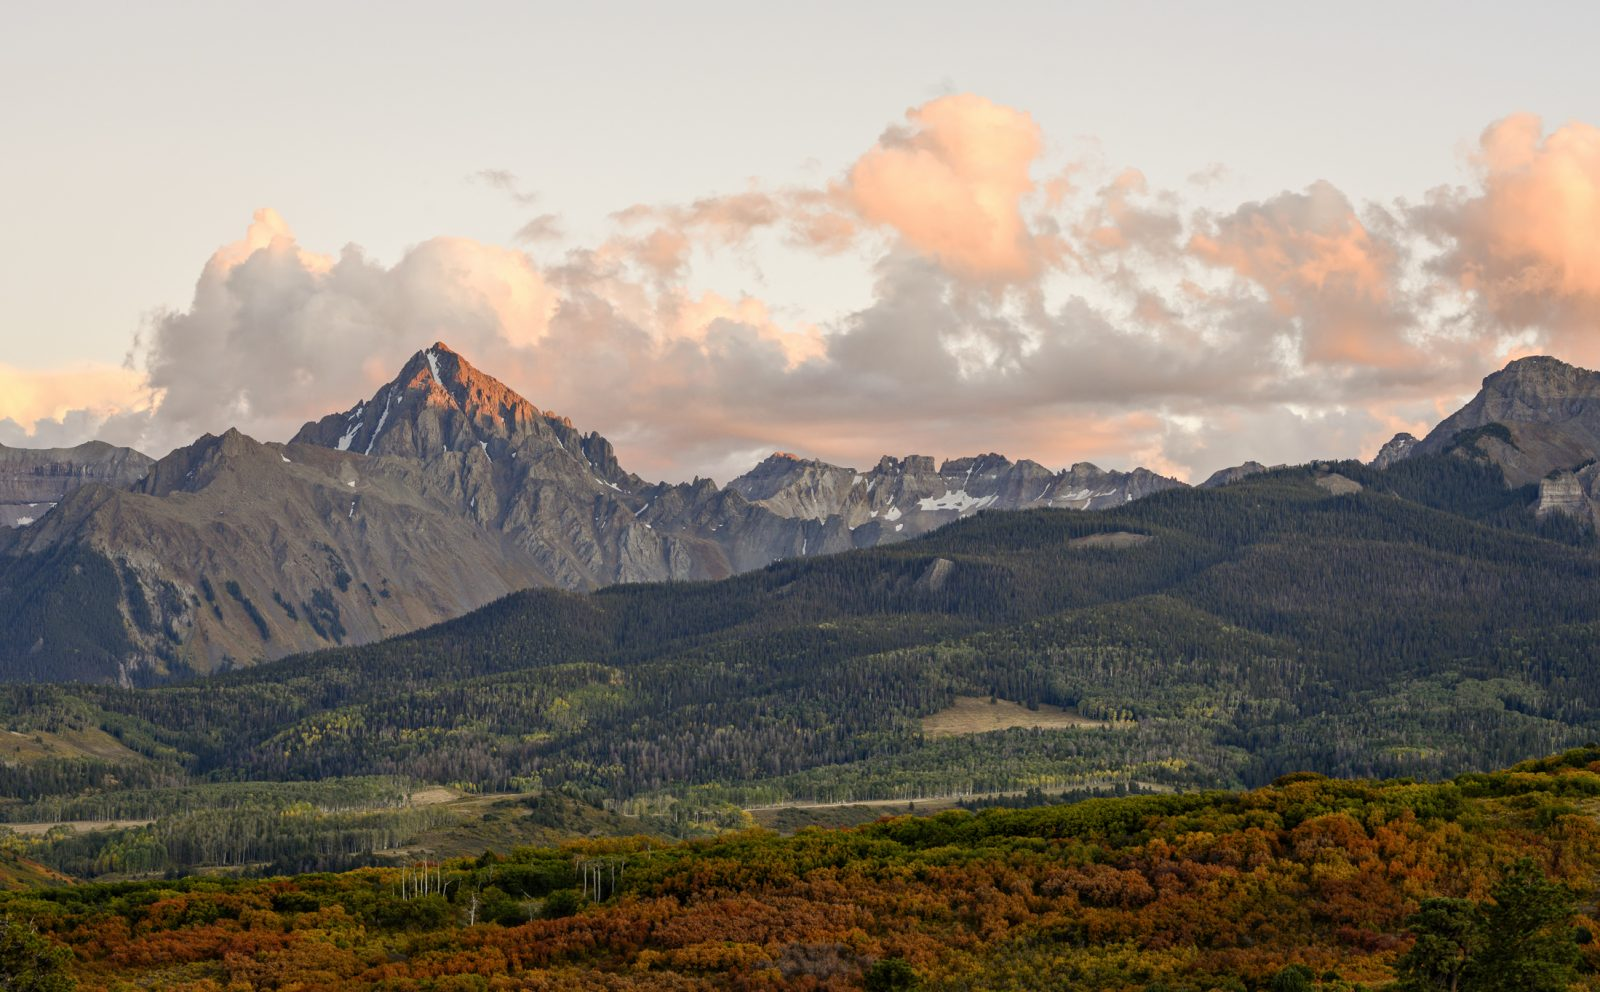 Sunset at the Dallas Divide.